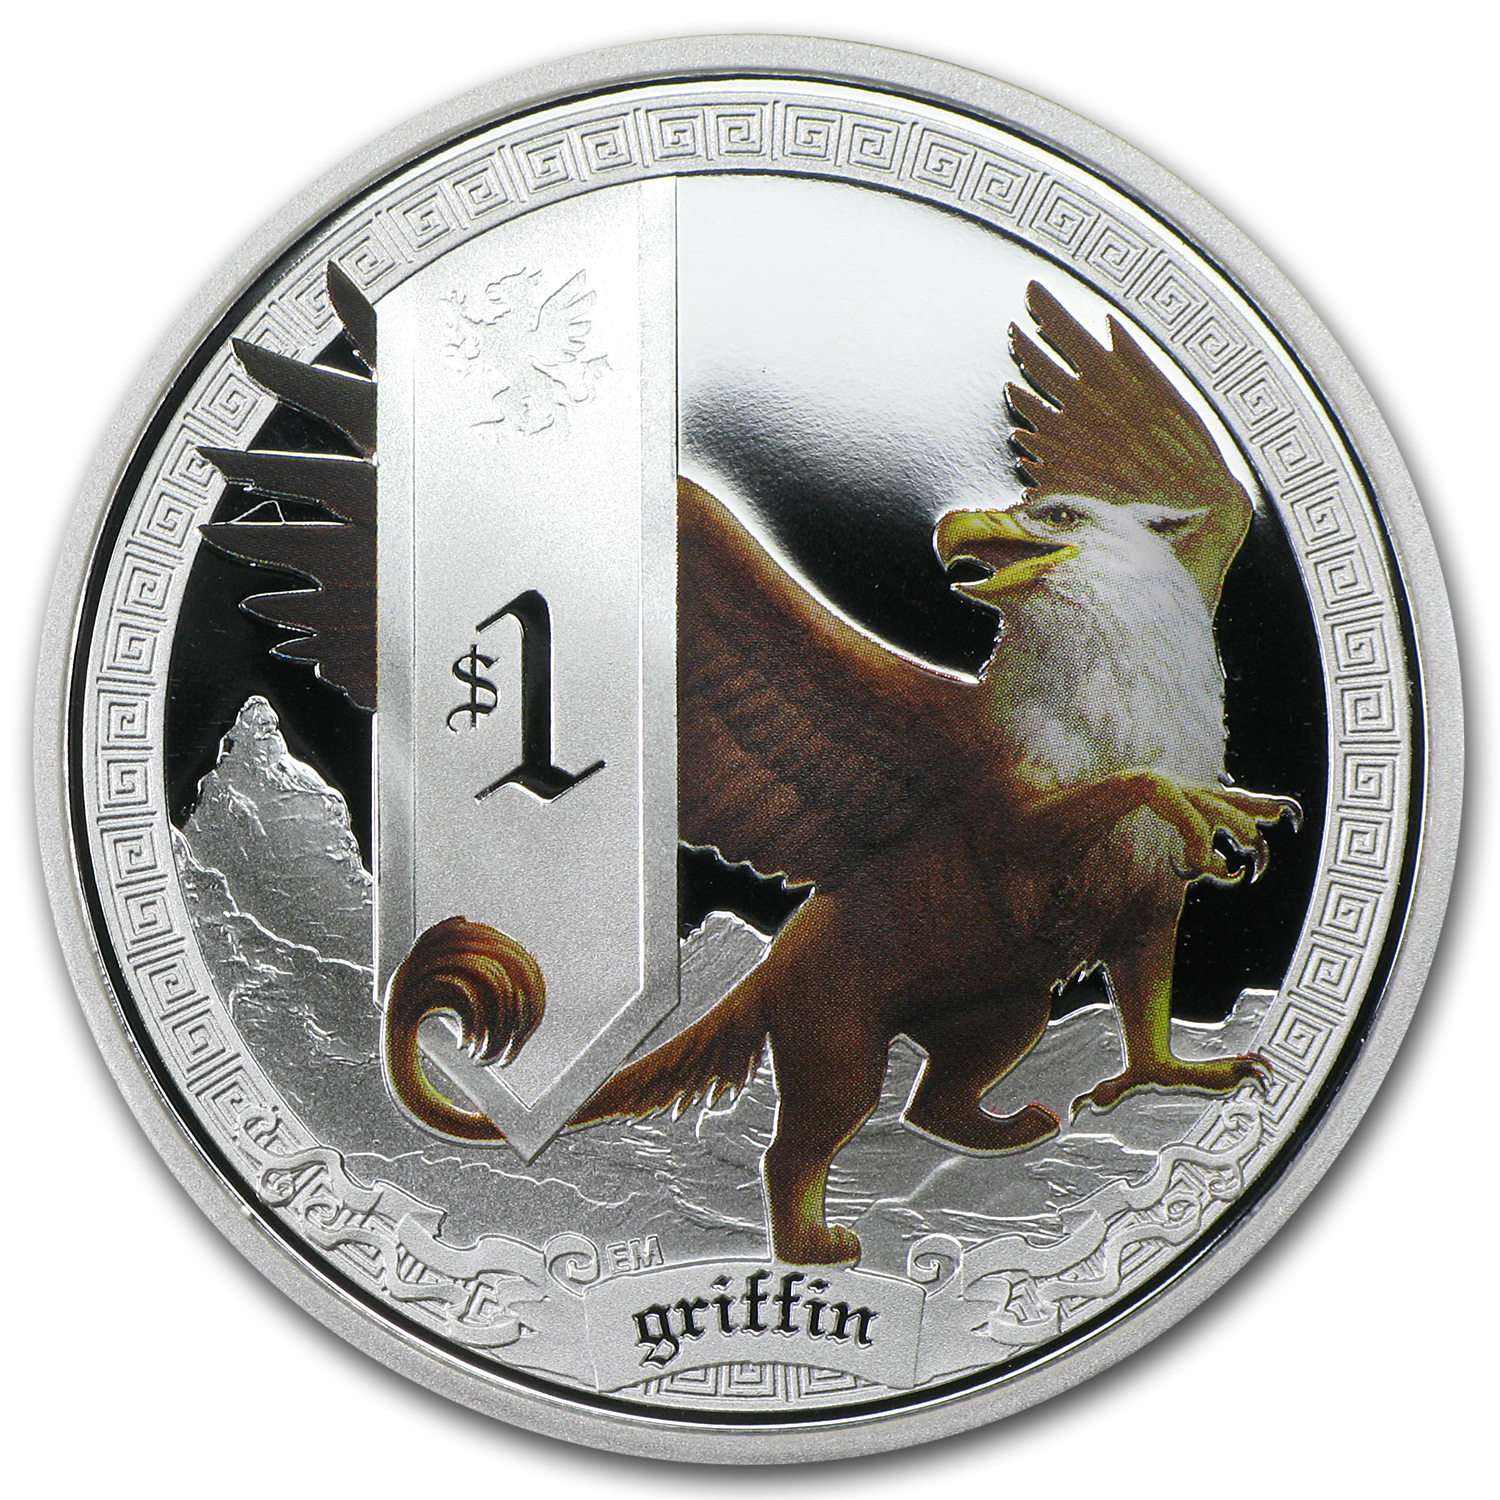 2013 Tuvalu 1 oz Silver Mythical Creatures Griffin Proof